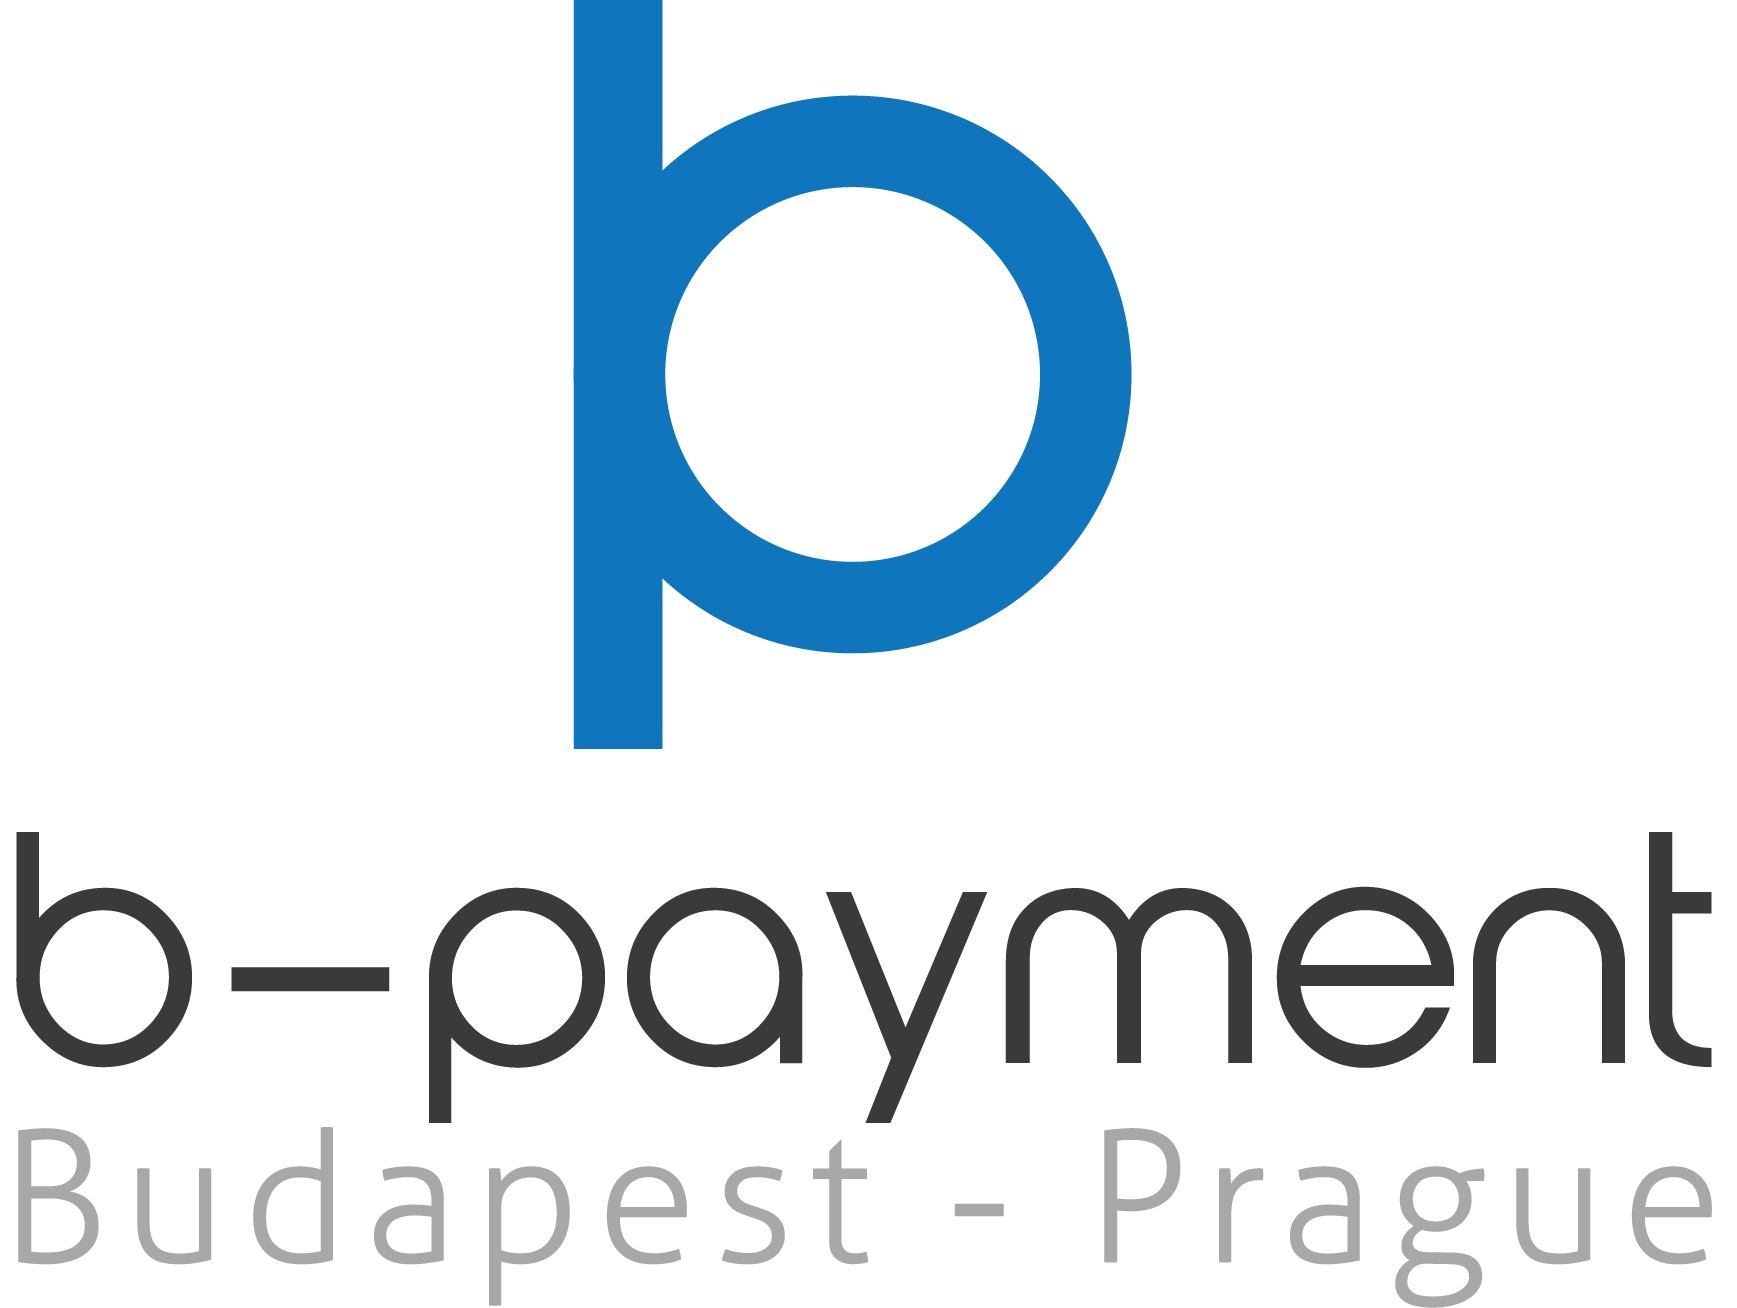 b-payment